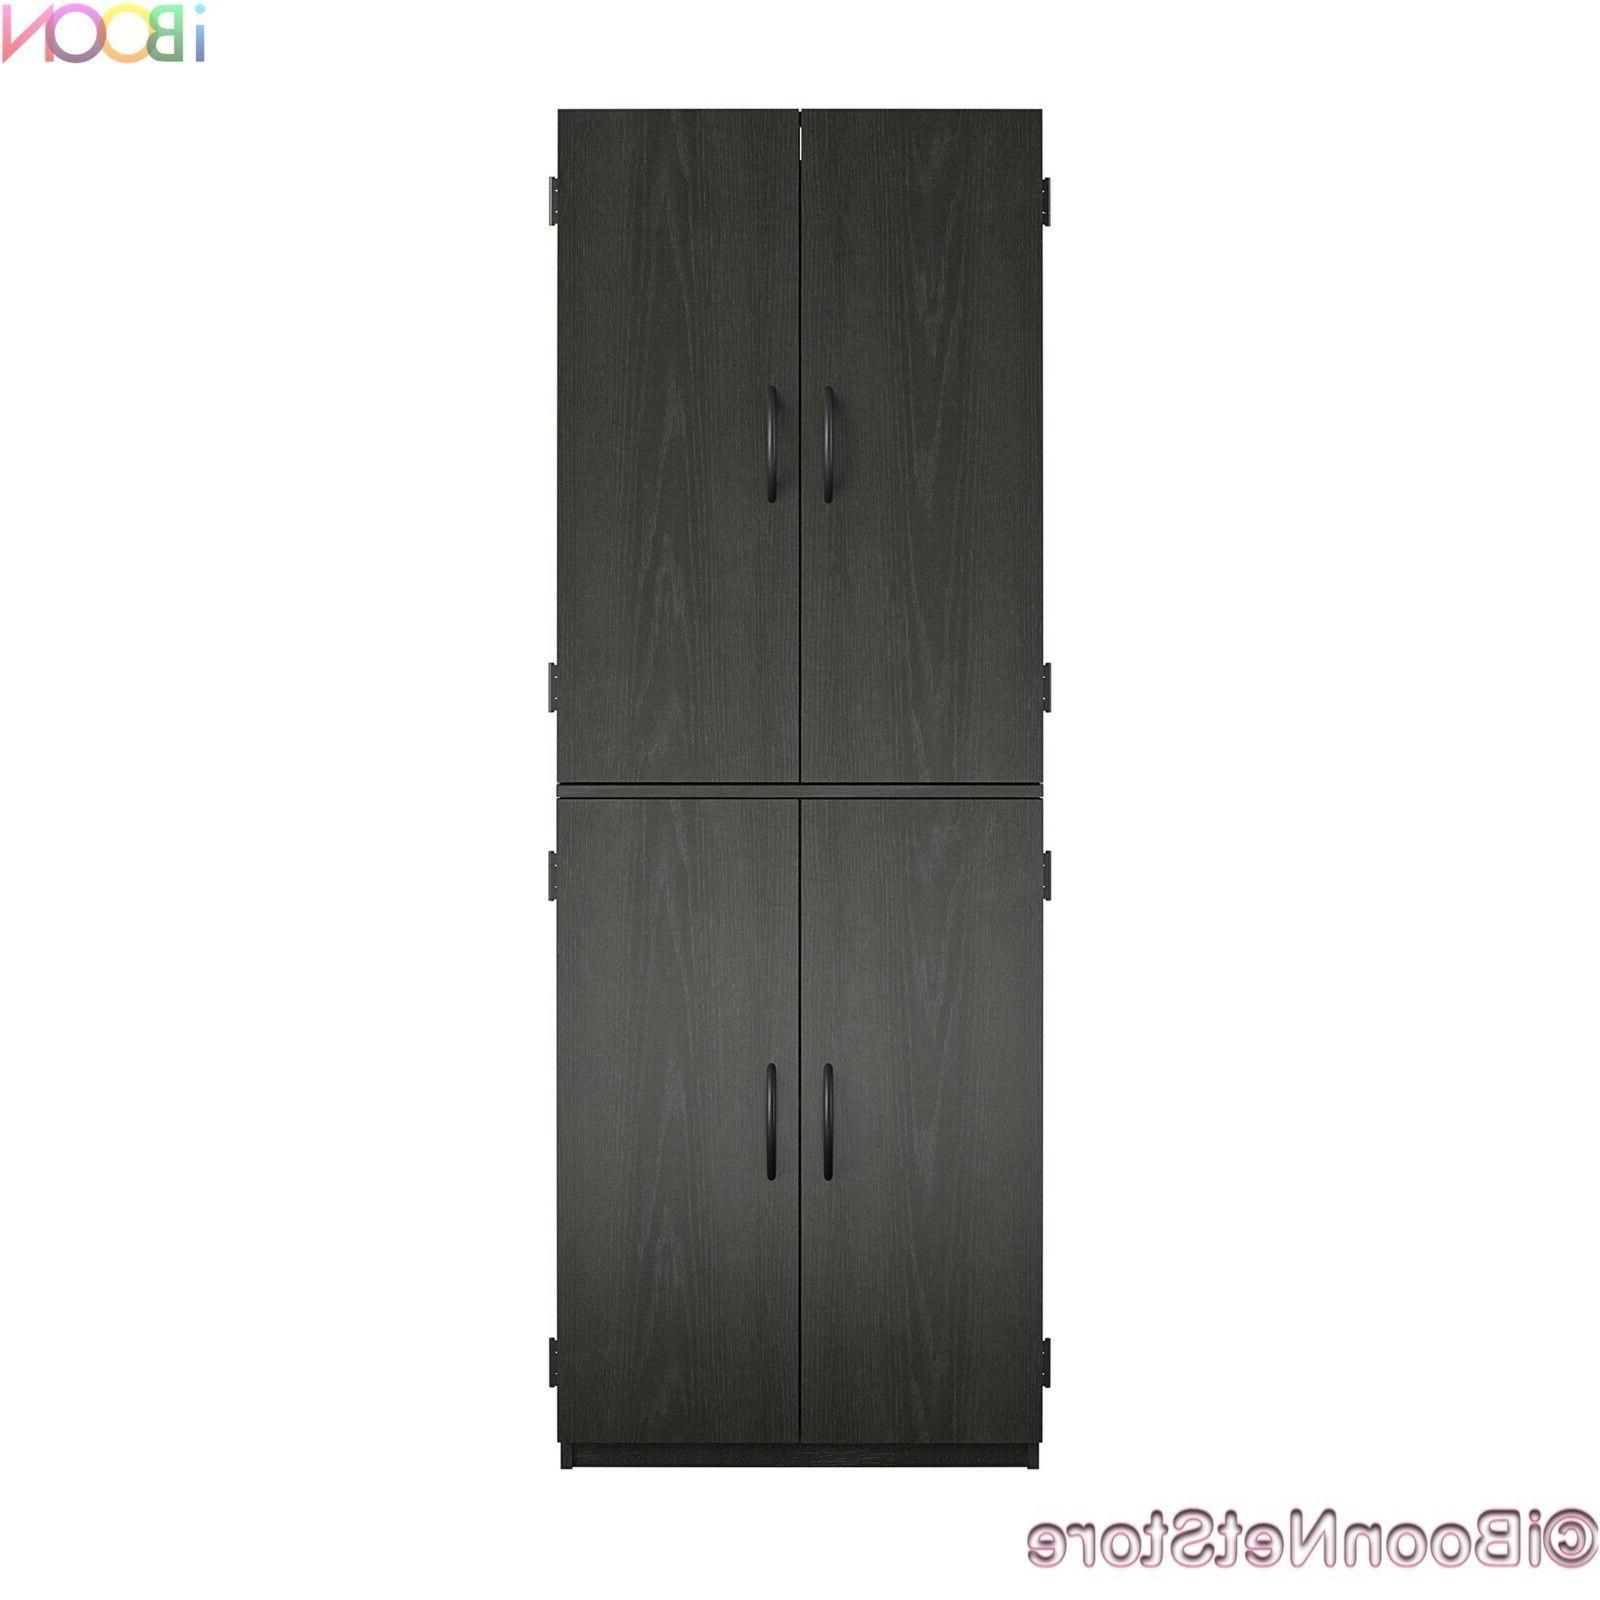 Wood Storage Cabinets 4 Doors Tall Pantry vertical Organizer